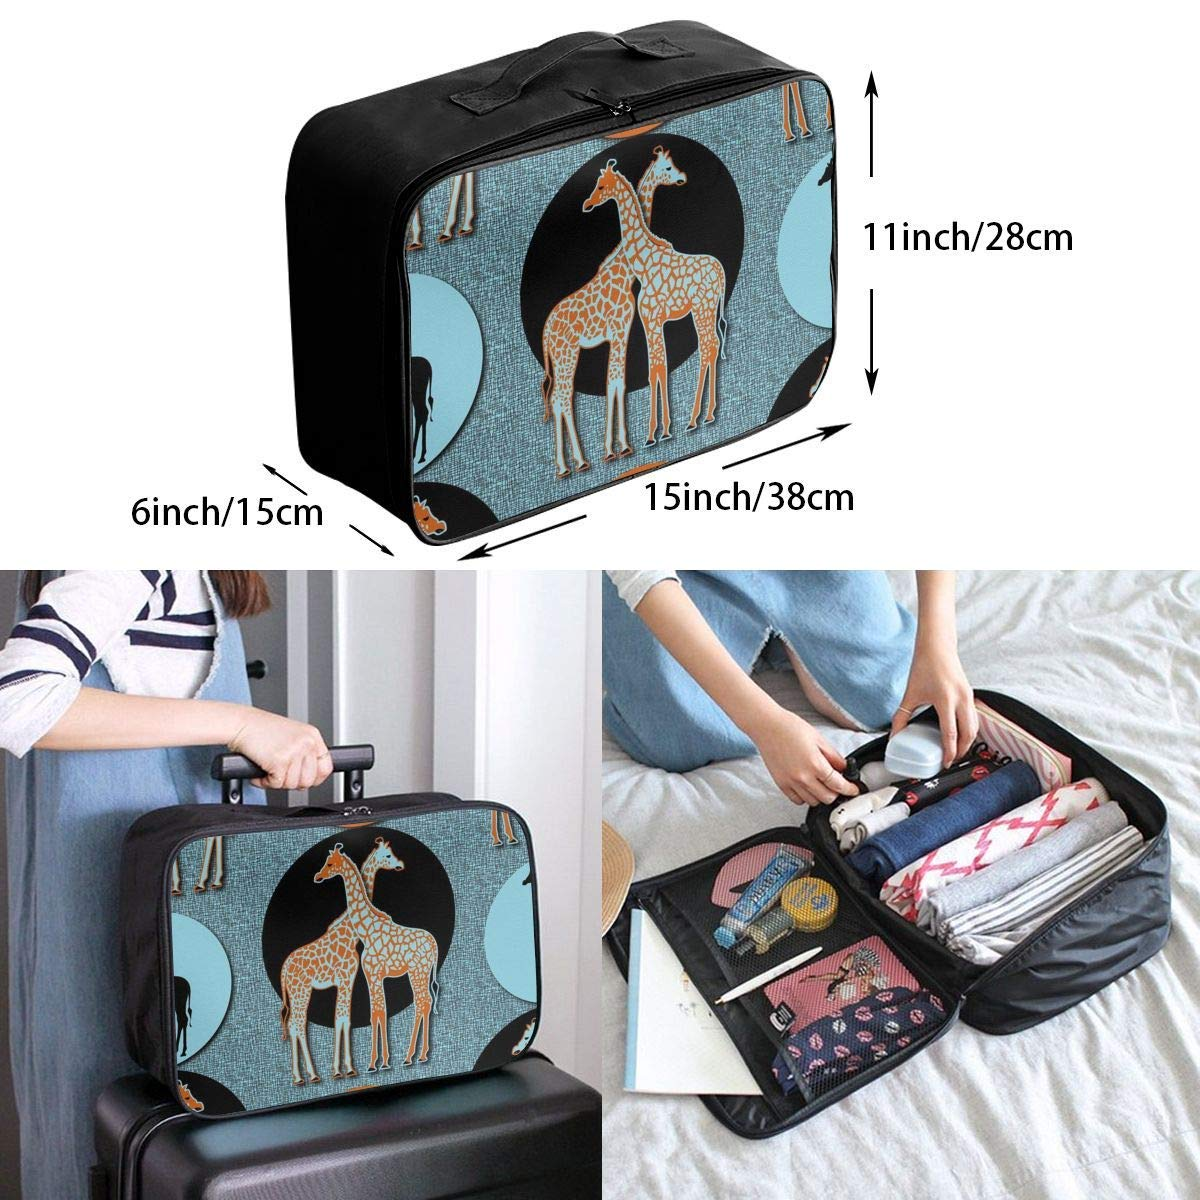 JTRVW Luggage Bags for Travel Travel Lightweight Waterproof Foldable Storage Carry Luggage Duffle Tote Bag Love Giraffe